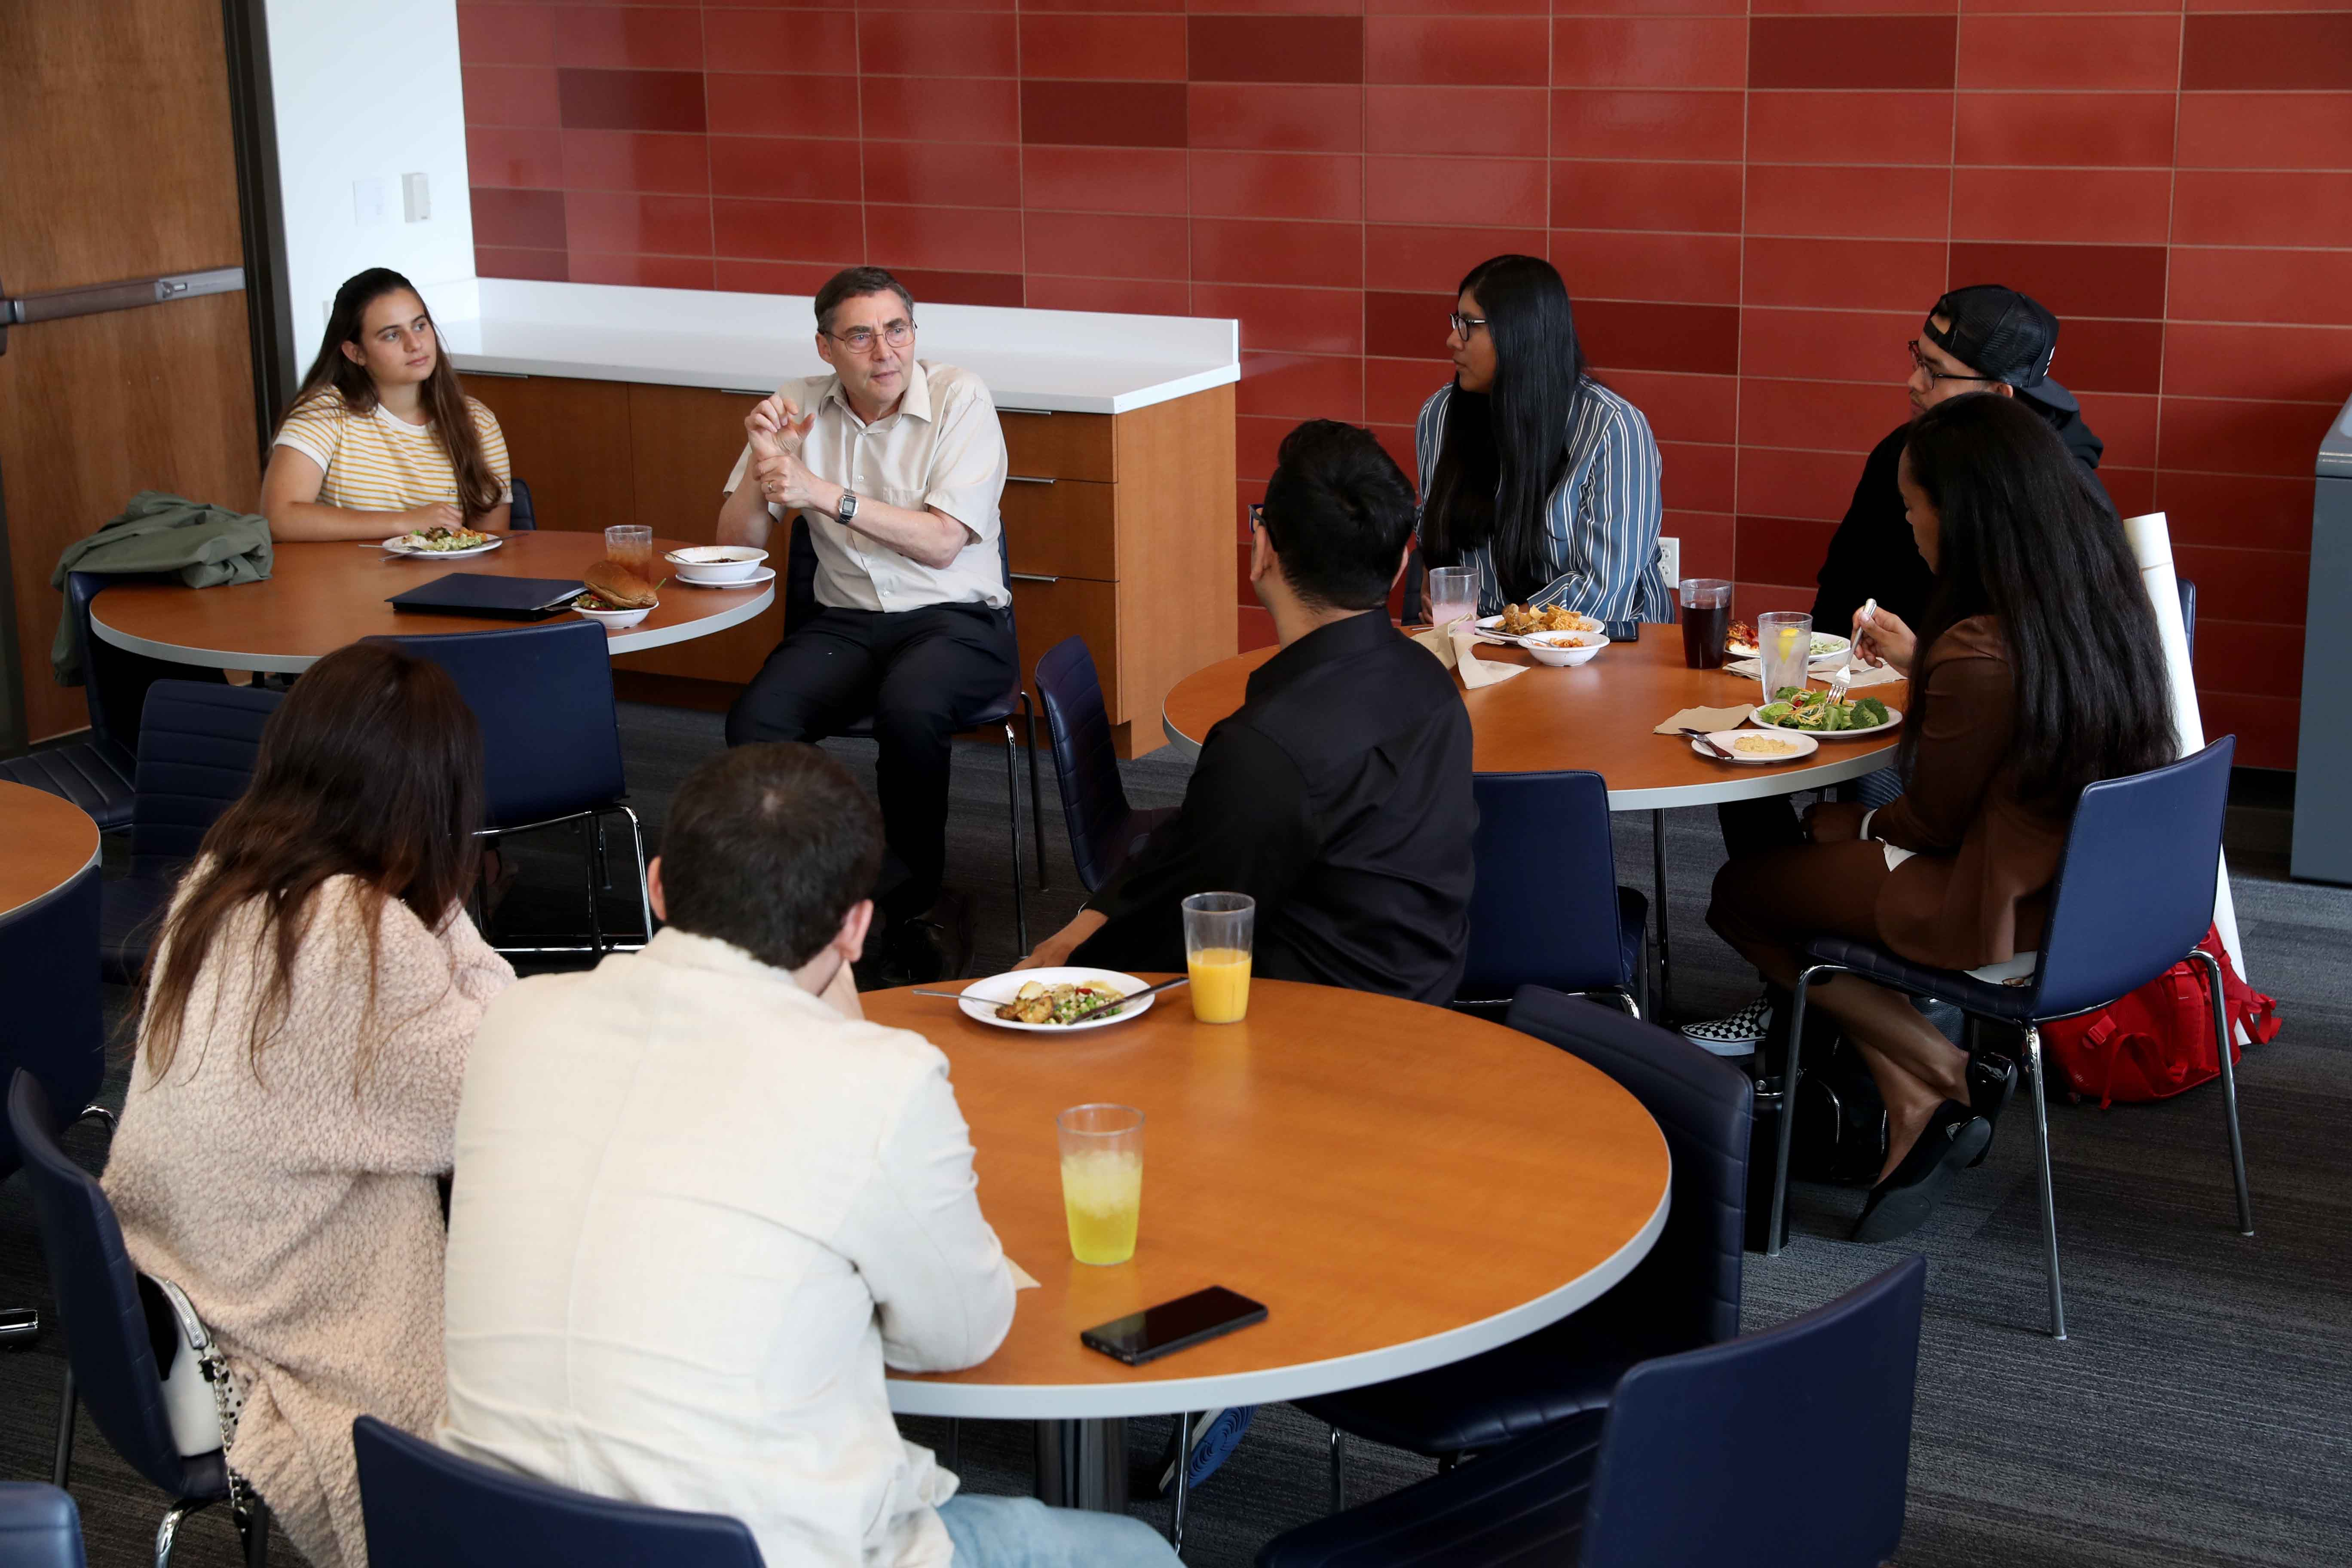 In addition to his lecture, Wieman also had lunch with select students.